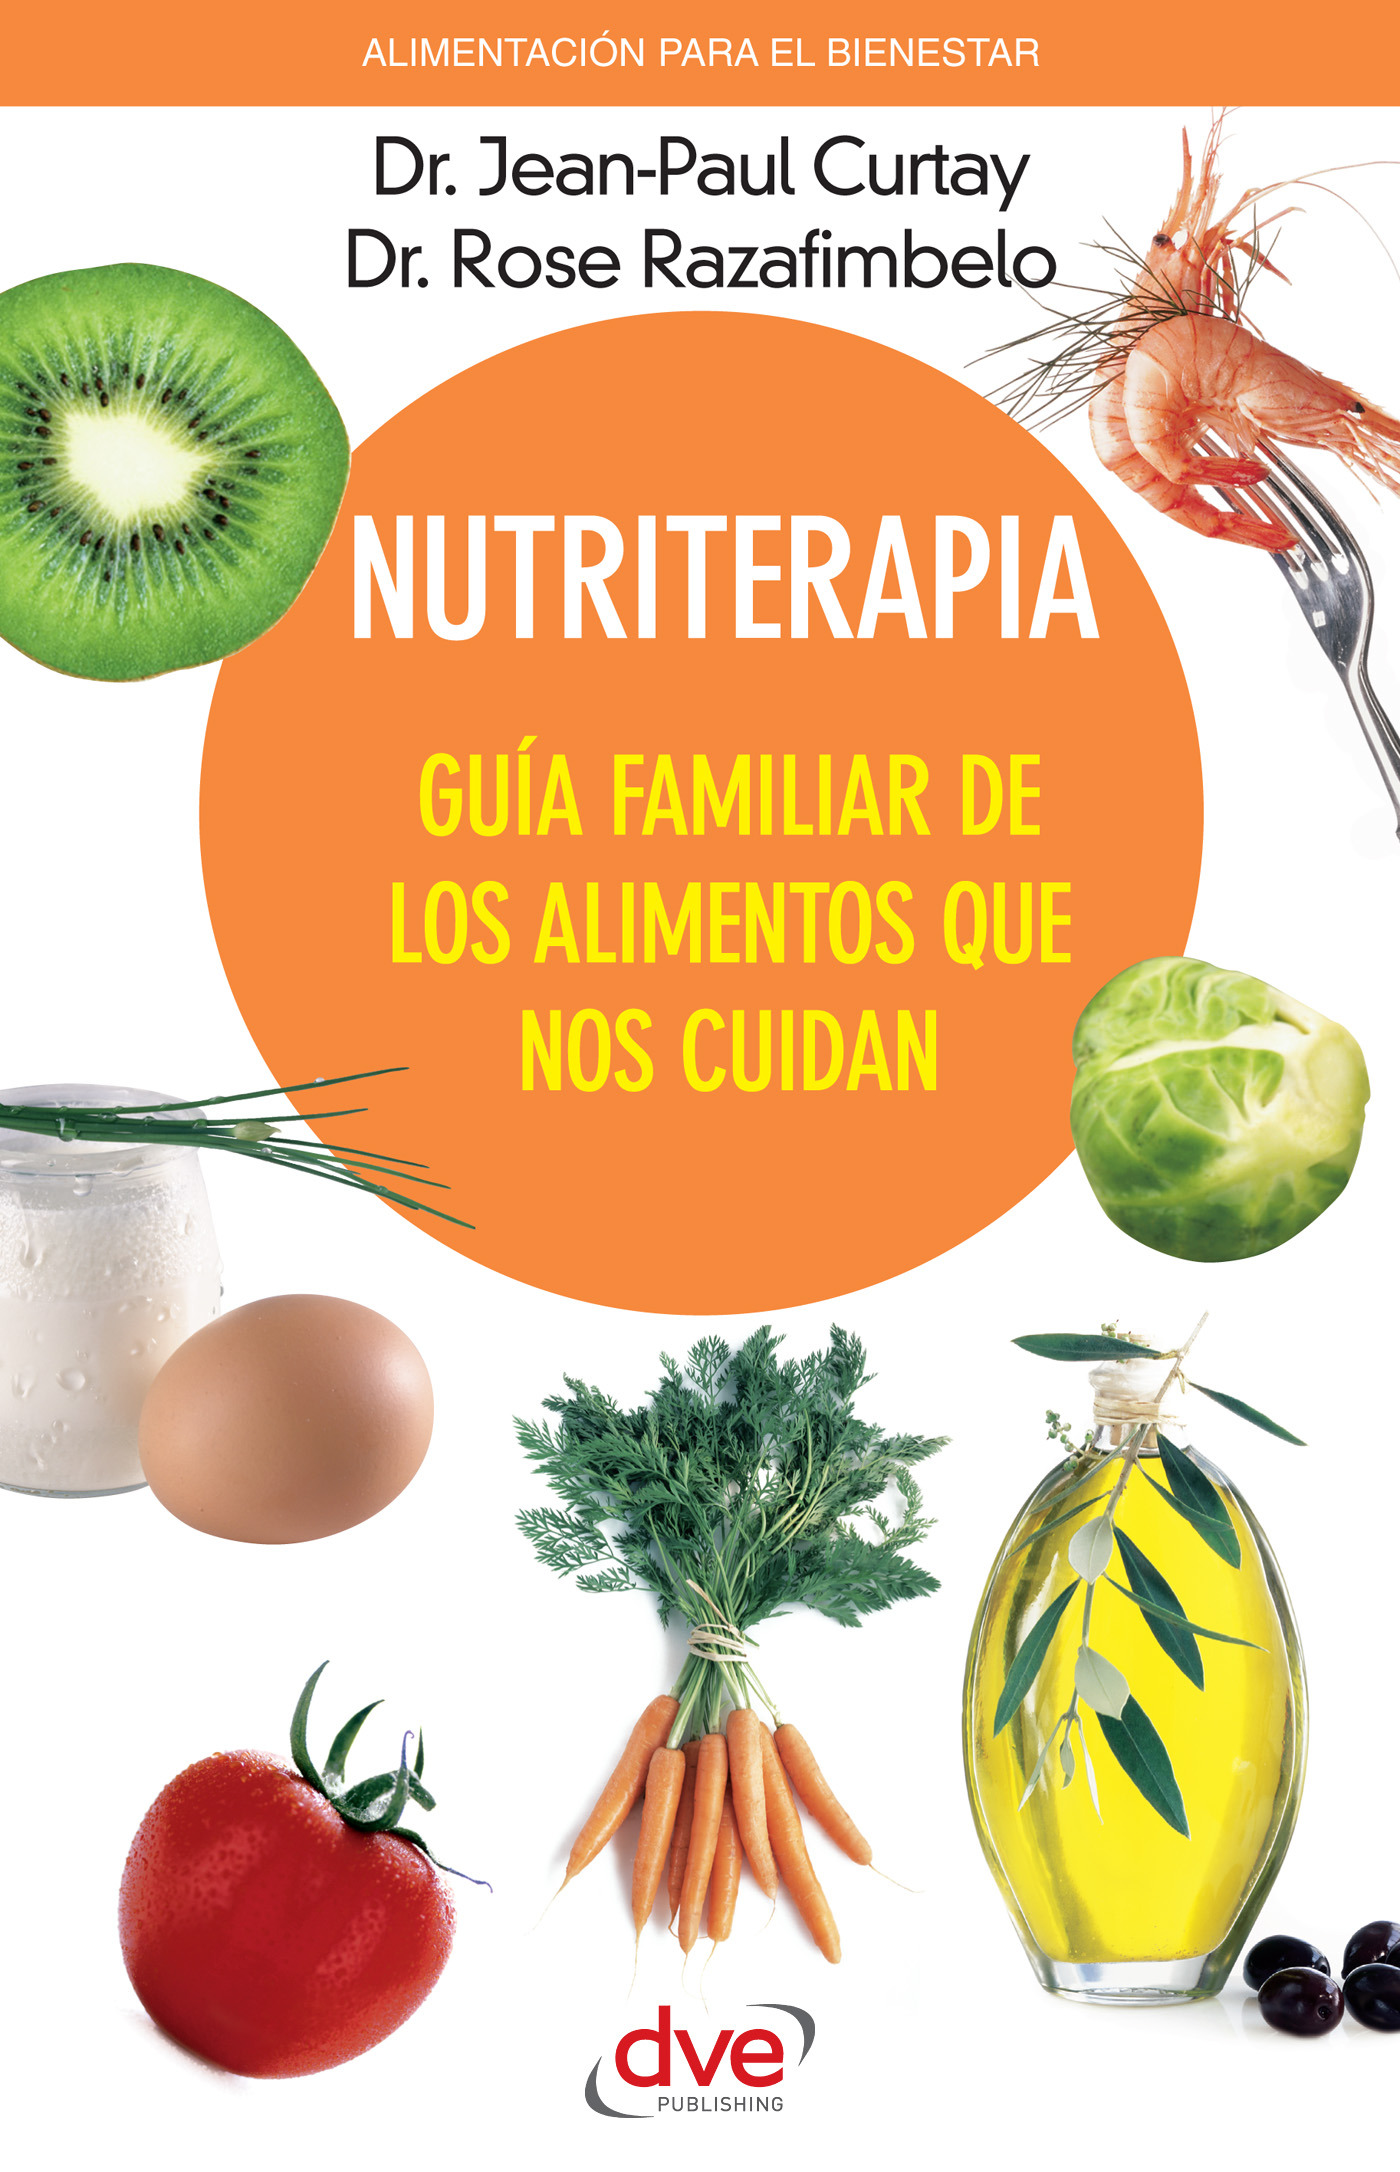 Curtay, Jean-Paul - Nutriterapia. Guía familiar de los alimentos que nos cuidan, ebook